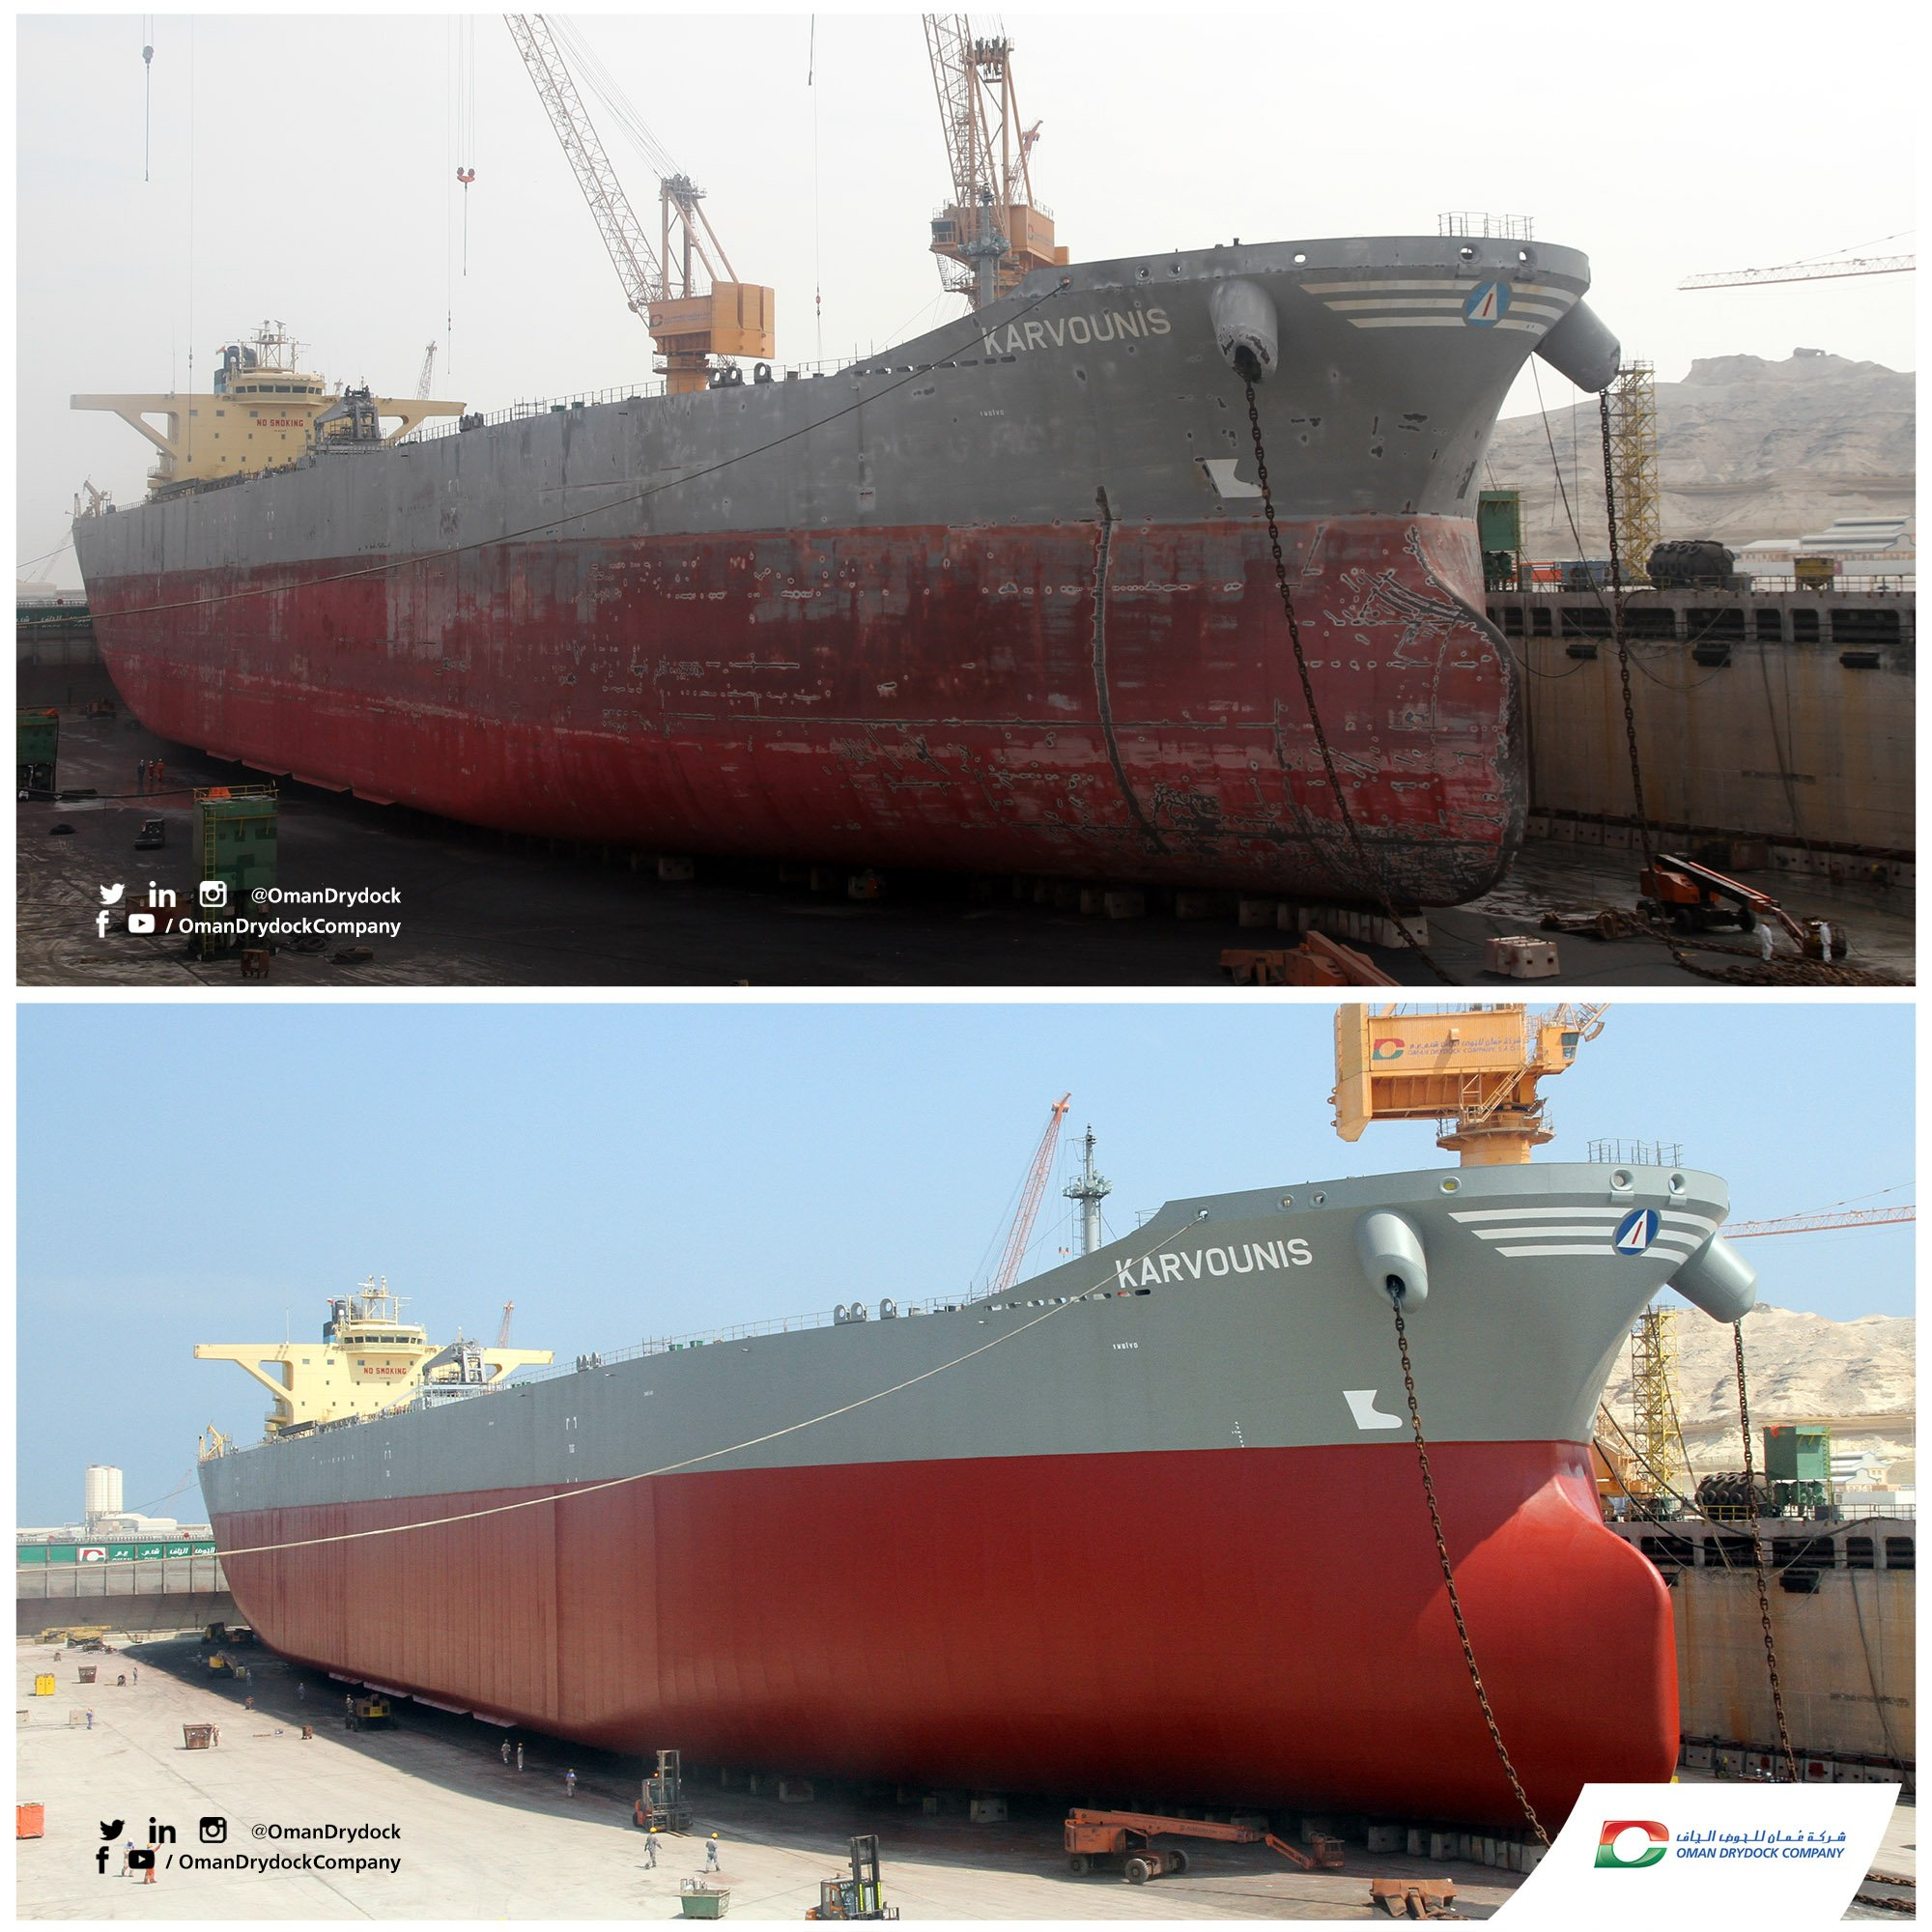 Oman Drydock Company On Twitter Oman Drydock Completes The Dry Docking Repair Jobs Of Greek Crude Oil Tanker Karavounis Owned By Samos Steamship Co Https T Co 034pr7md7b